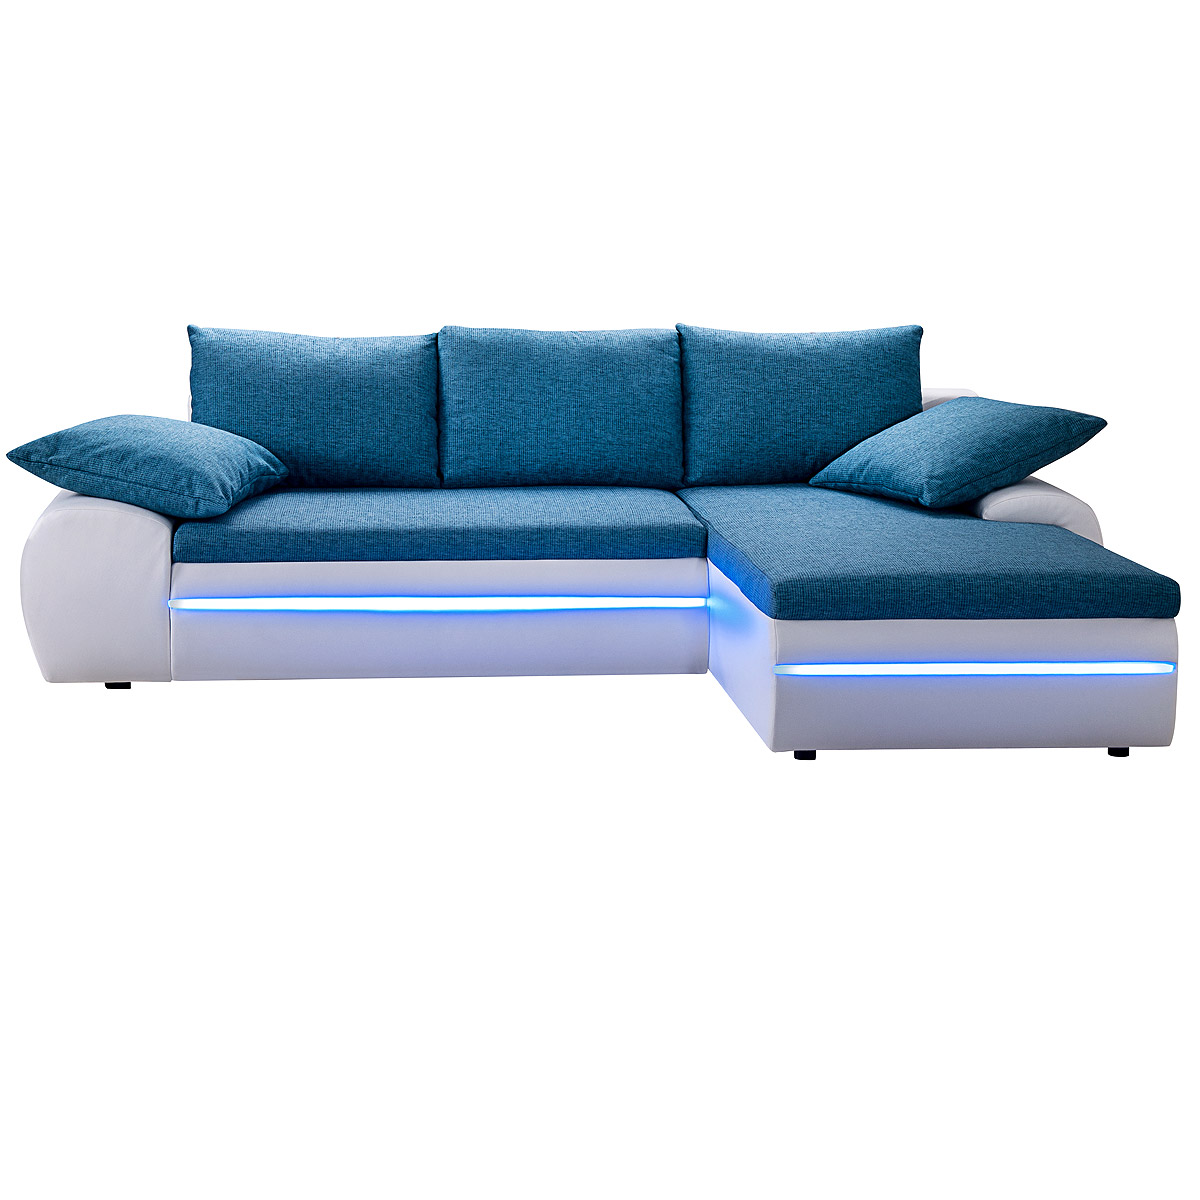 ecksofa dubai sofa wohnlandschaft wei und t rkis inkl rgb led beleuchtung ebay. Black Bedroom Furniture Sets. Home Design Ideas